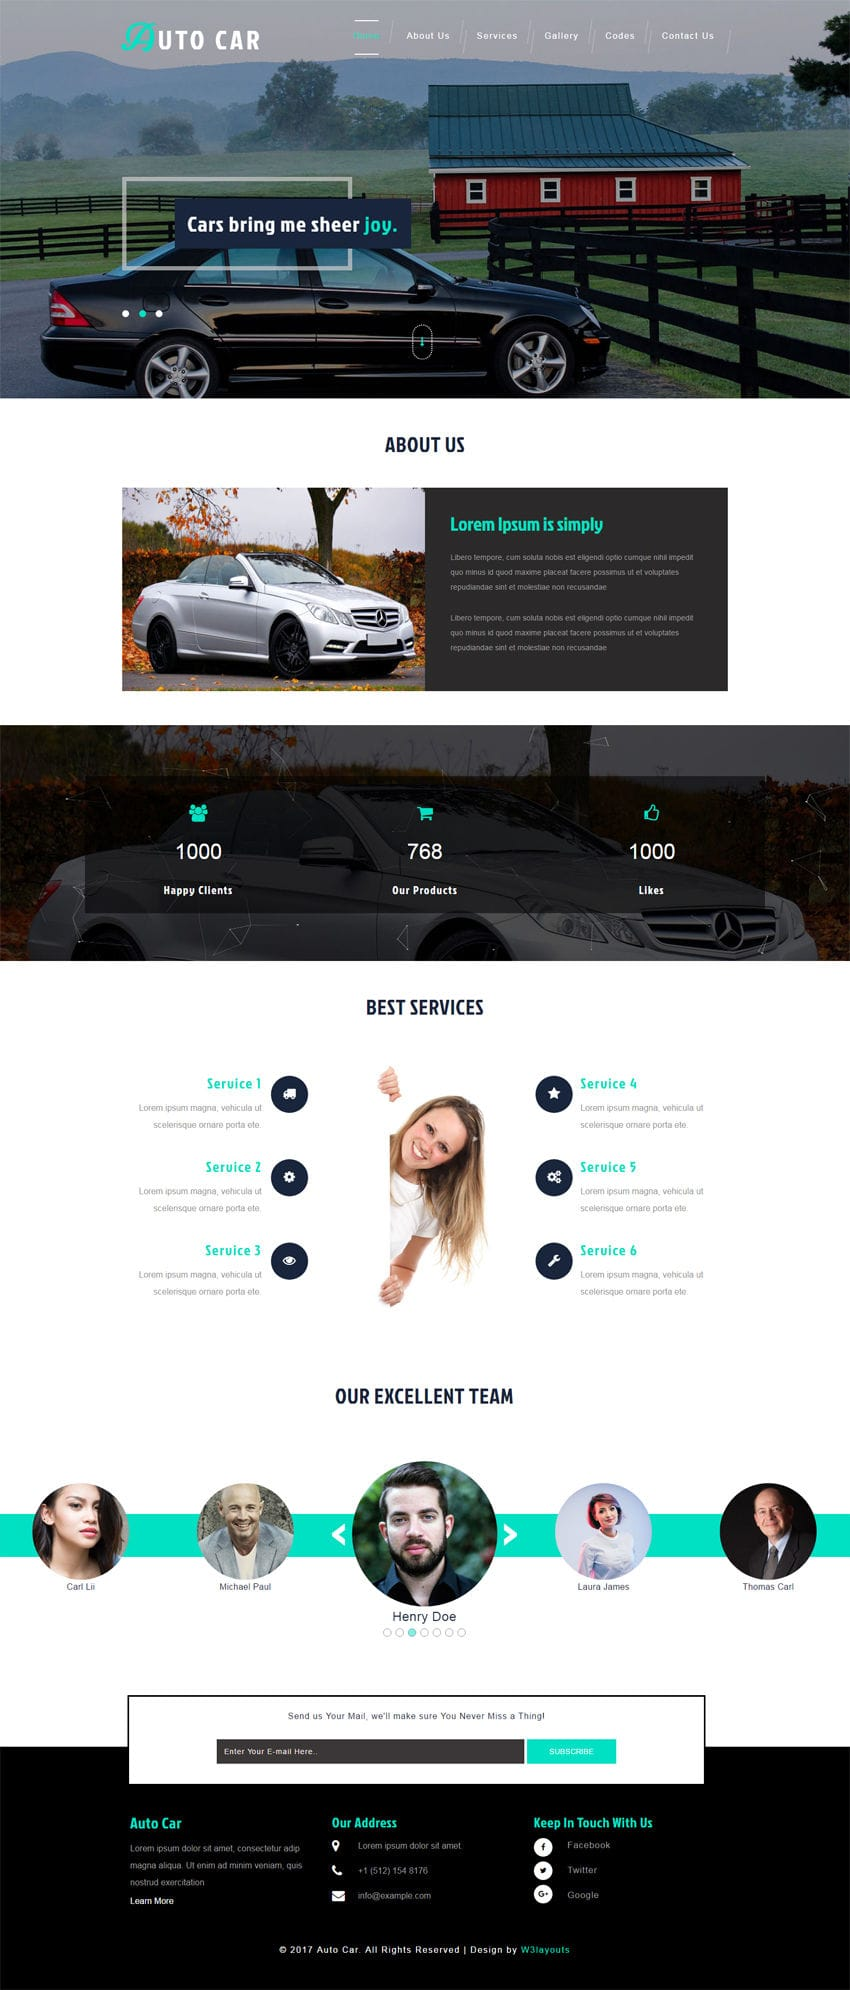 Auto Car is an Automobile Category Bootstrap Responsive Website Template. It is entirely built in Bootstrap framework, HTML5, CSS3 and Jquery.